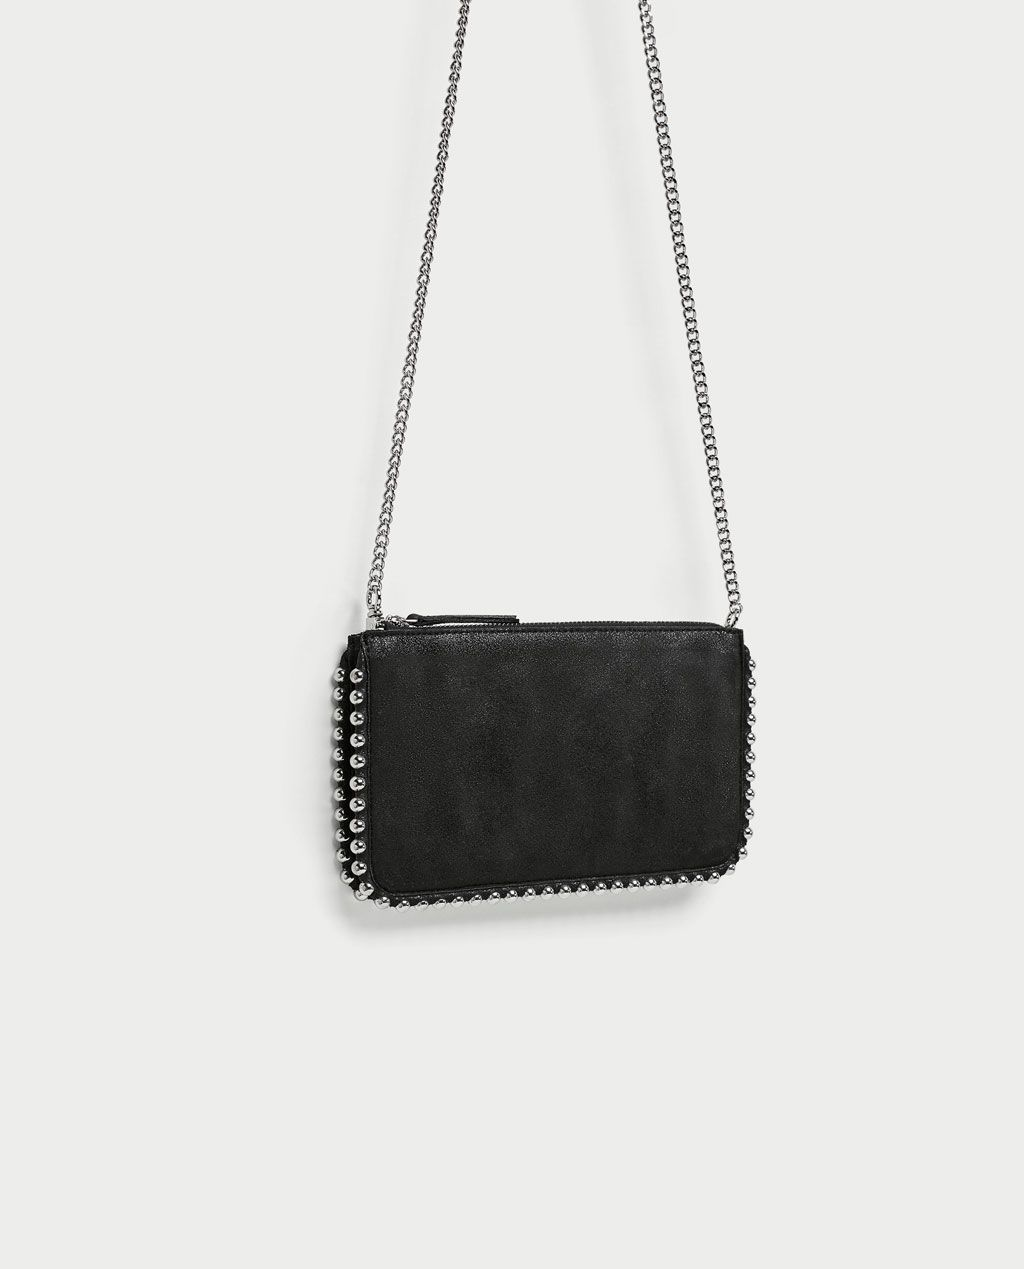 salvare d690c 6cd24 BORSA A TRACOLLA NERA BORCHIE ZARA | Black cross body bag ...